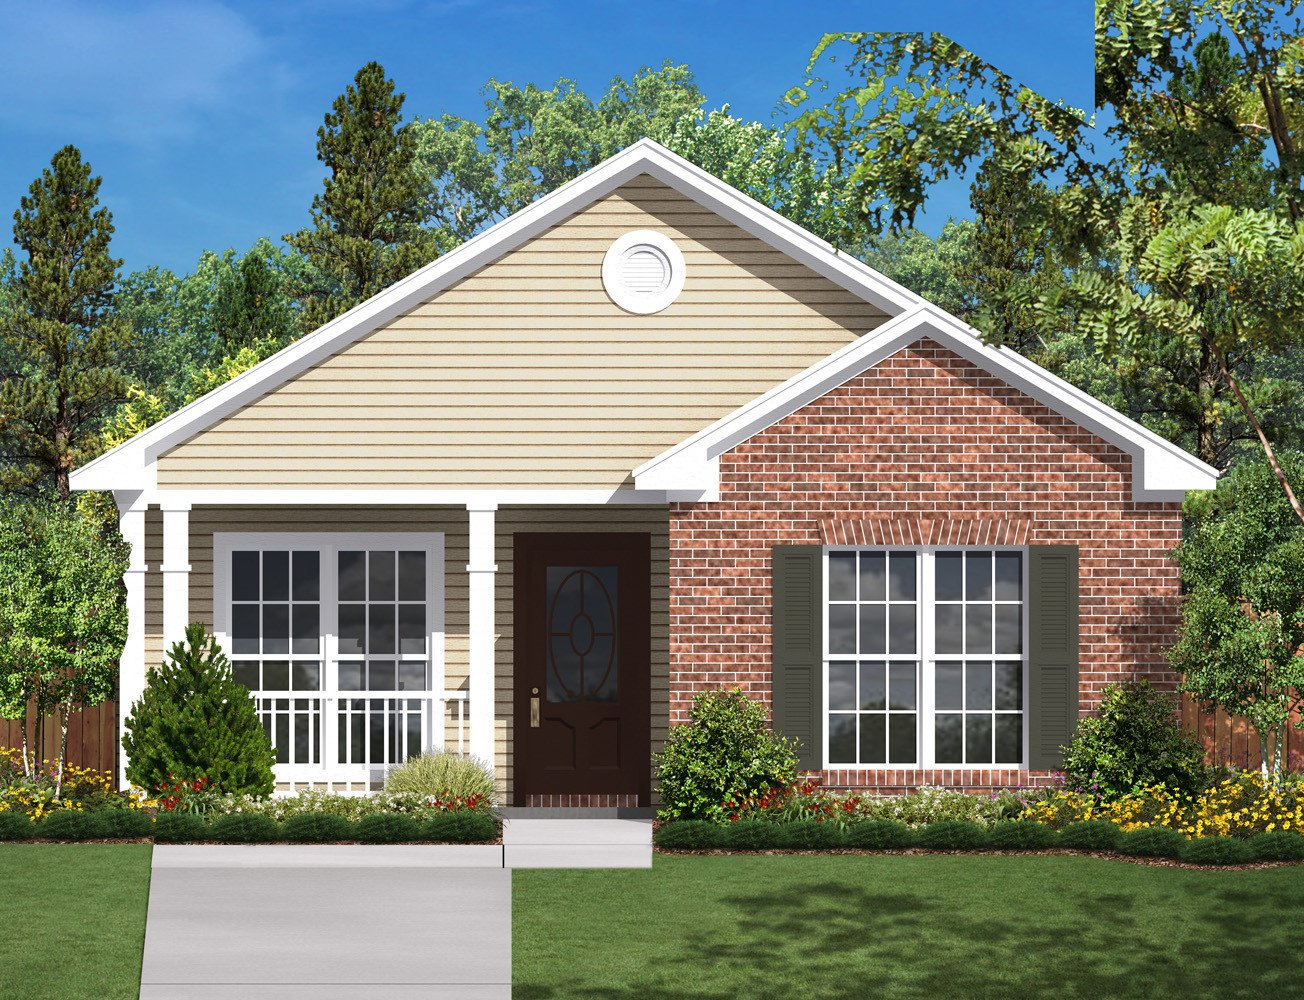 Ridgeline House Plan Traditional House Plans Ranch House Plans Small House Plans